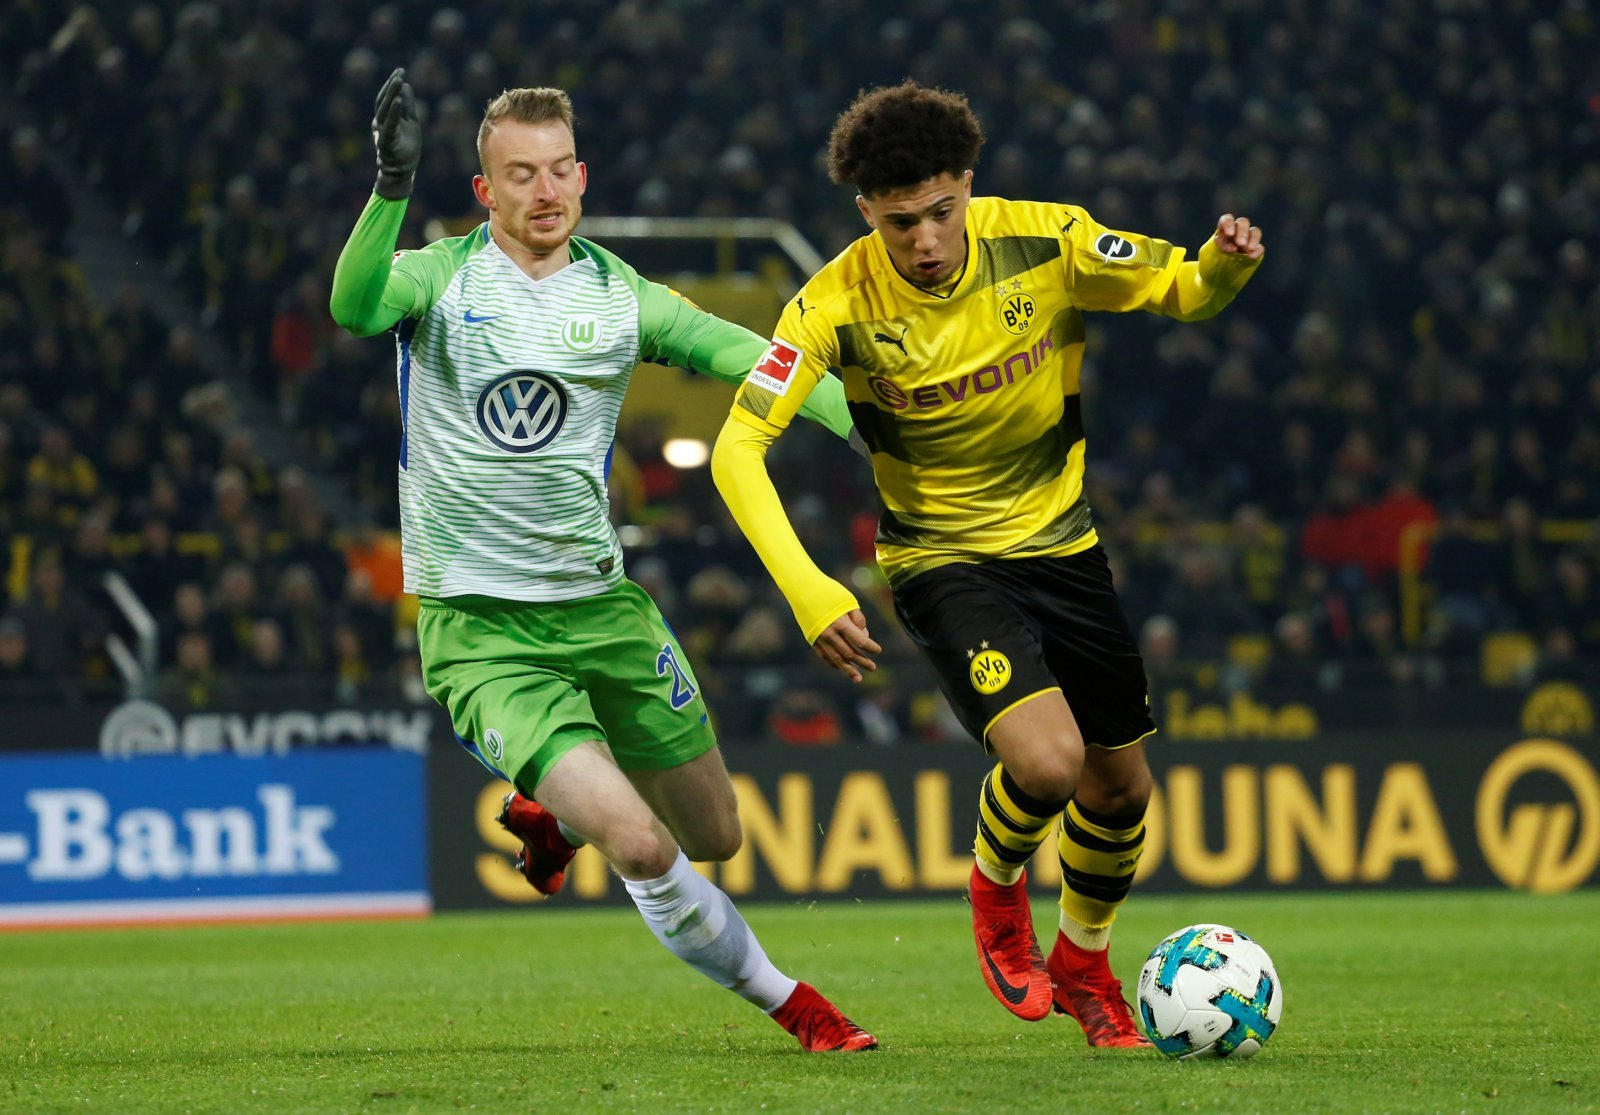 Emery must avoid making same Wenger mistake by luring Jadon Sancho to Arsenal